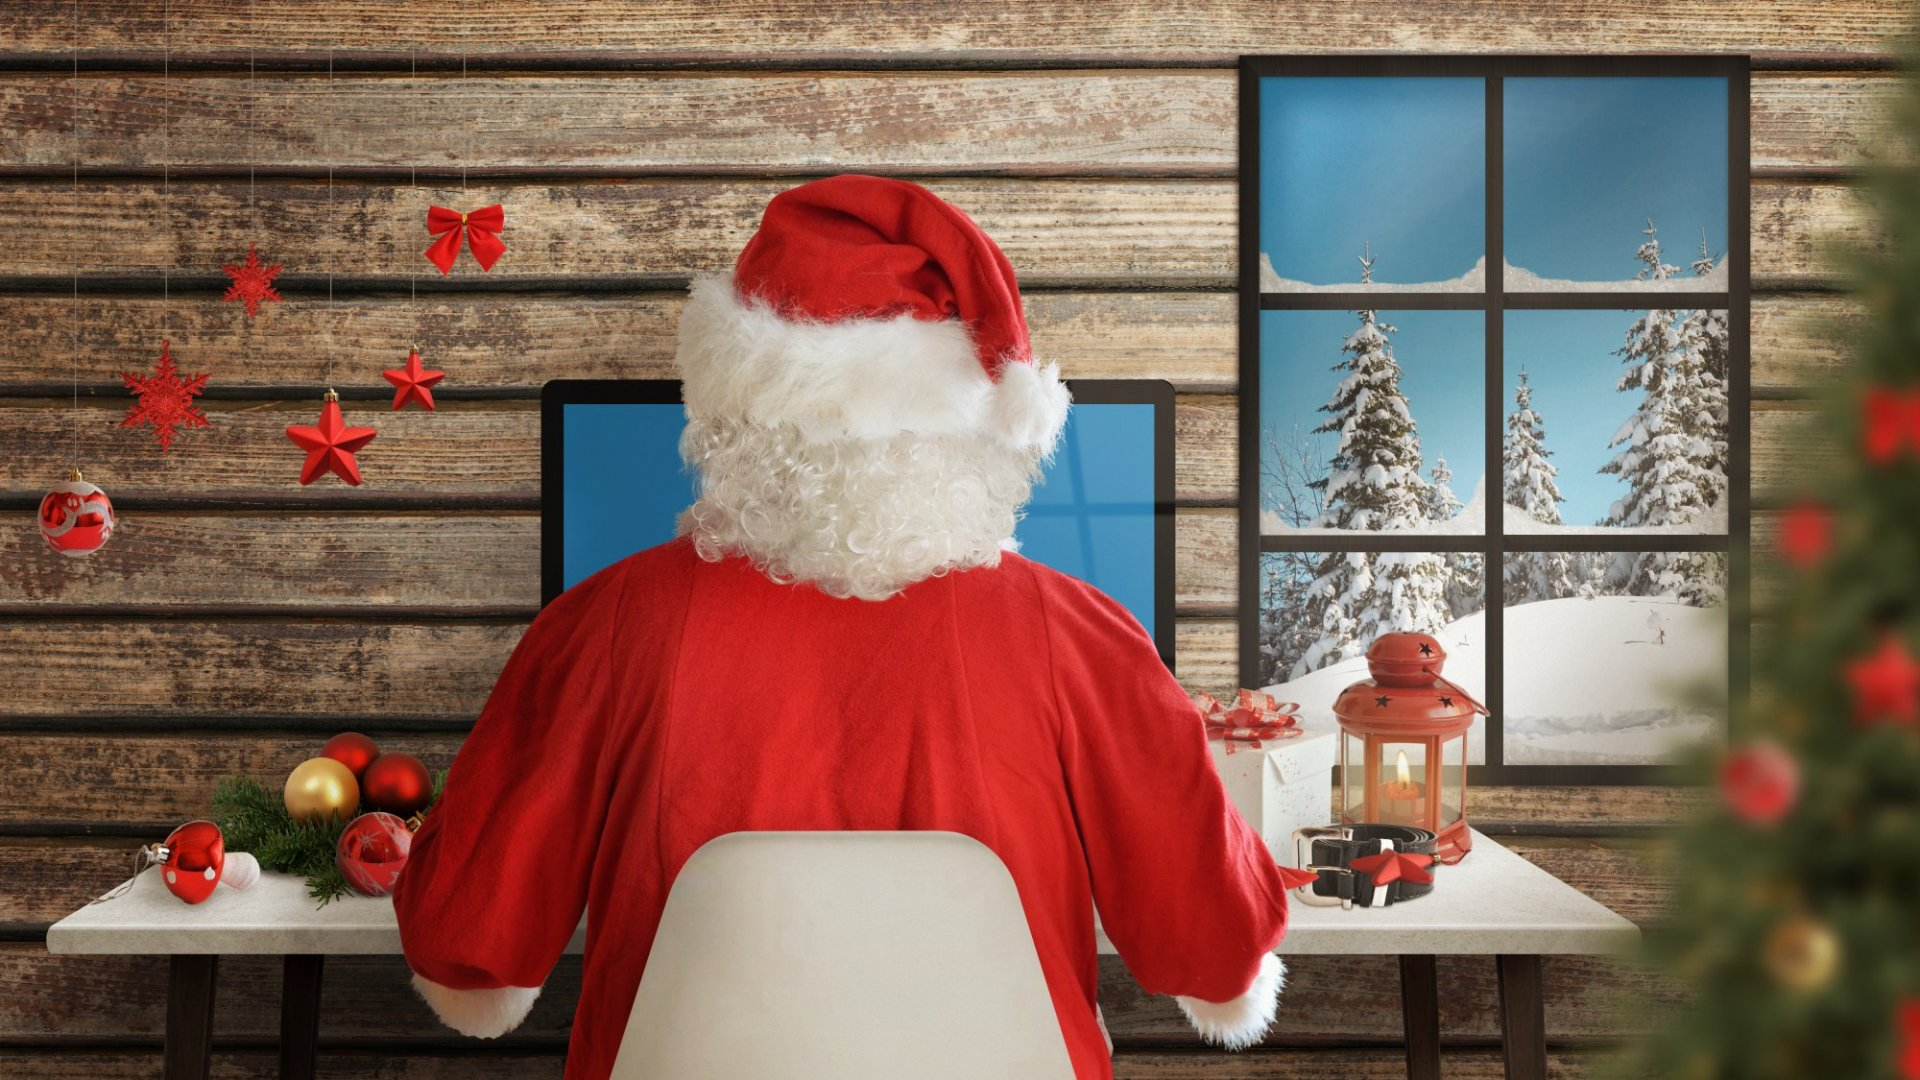 5 Ways to Stay Productive and Focused During the Holiday Seasons